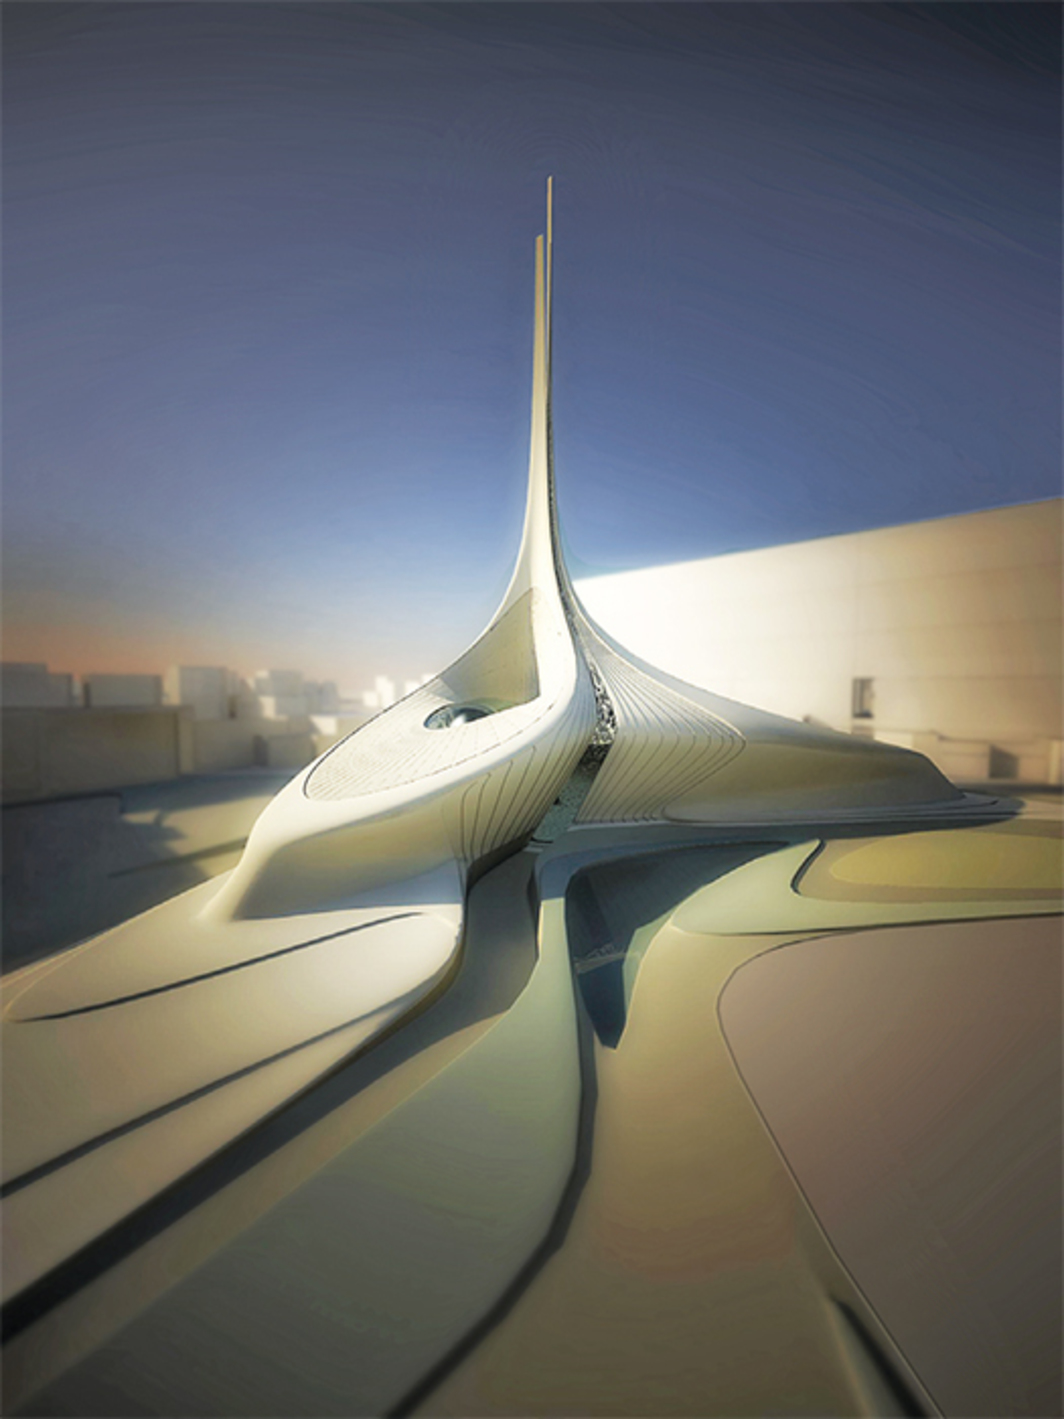 Zaha Hadid Architects, Avenues Mall Mosque, 2009, Kuwait. Rendering. © Zaha Hadid Architects.